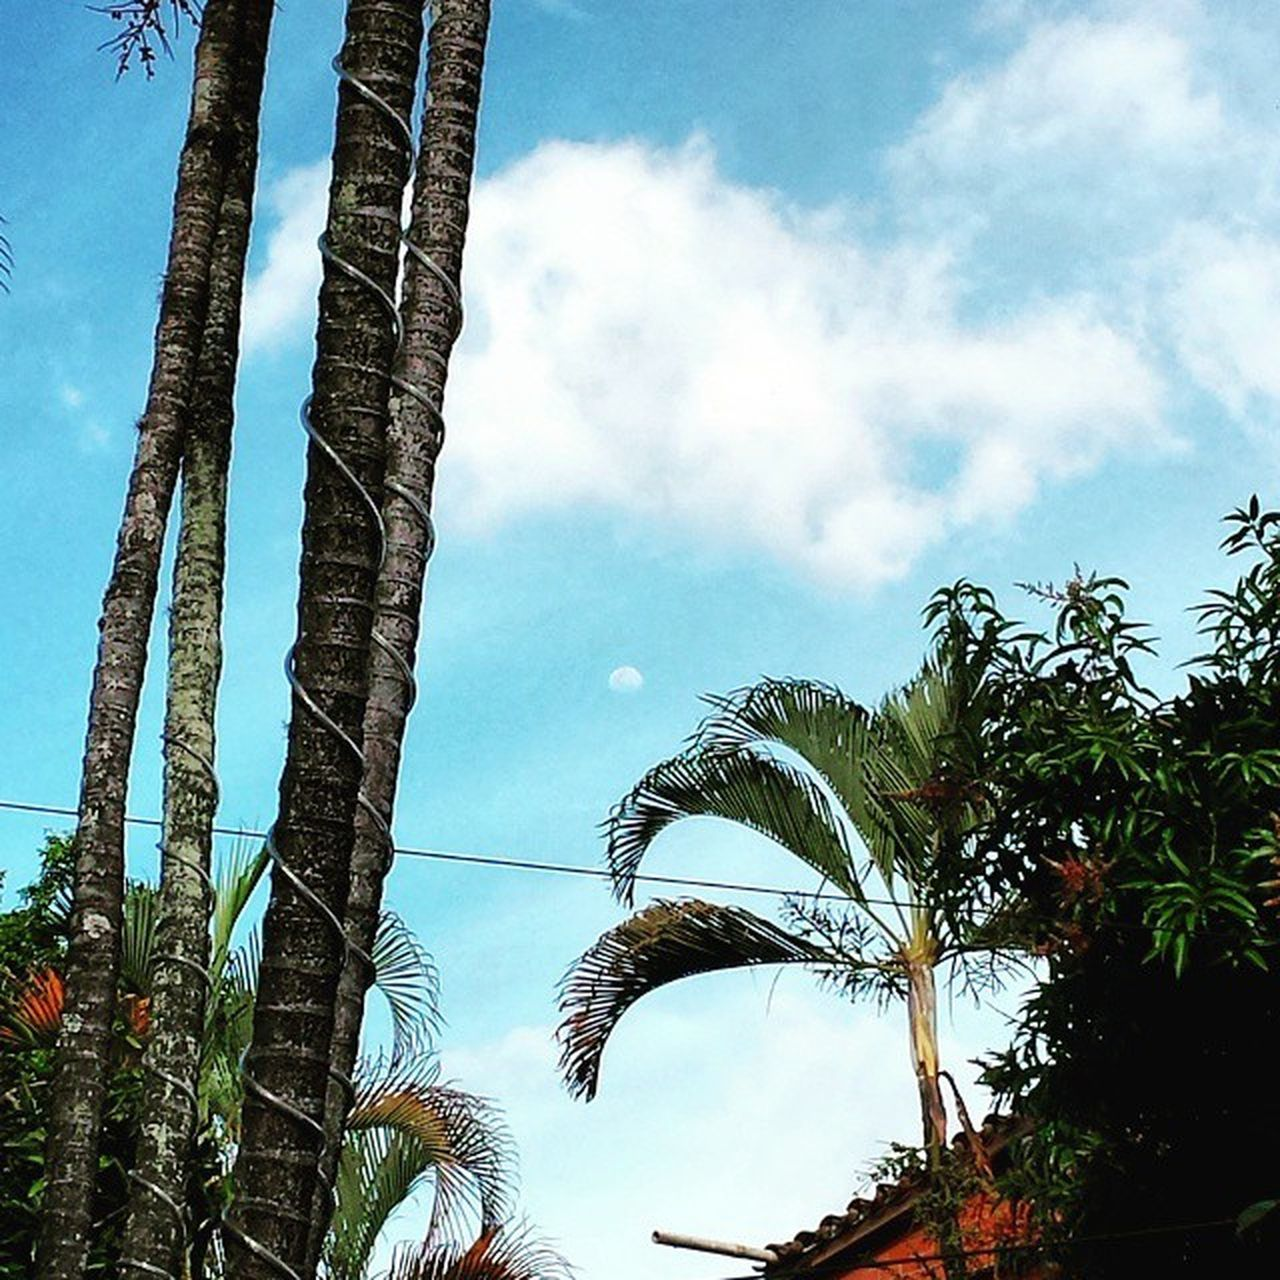 tree, sky, low angle view, growth, palm tree, day, cloud - sky, no people, architecture, tree trunk, outdoors, nature, built structure, plant, beauty in nature, building exterior, branch